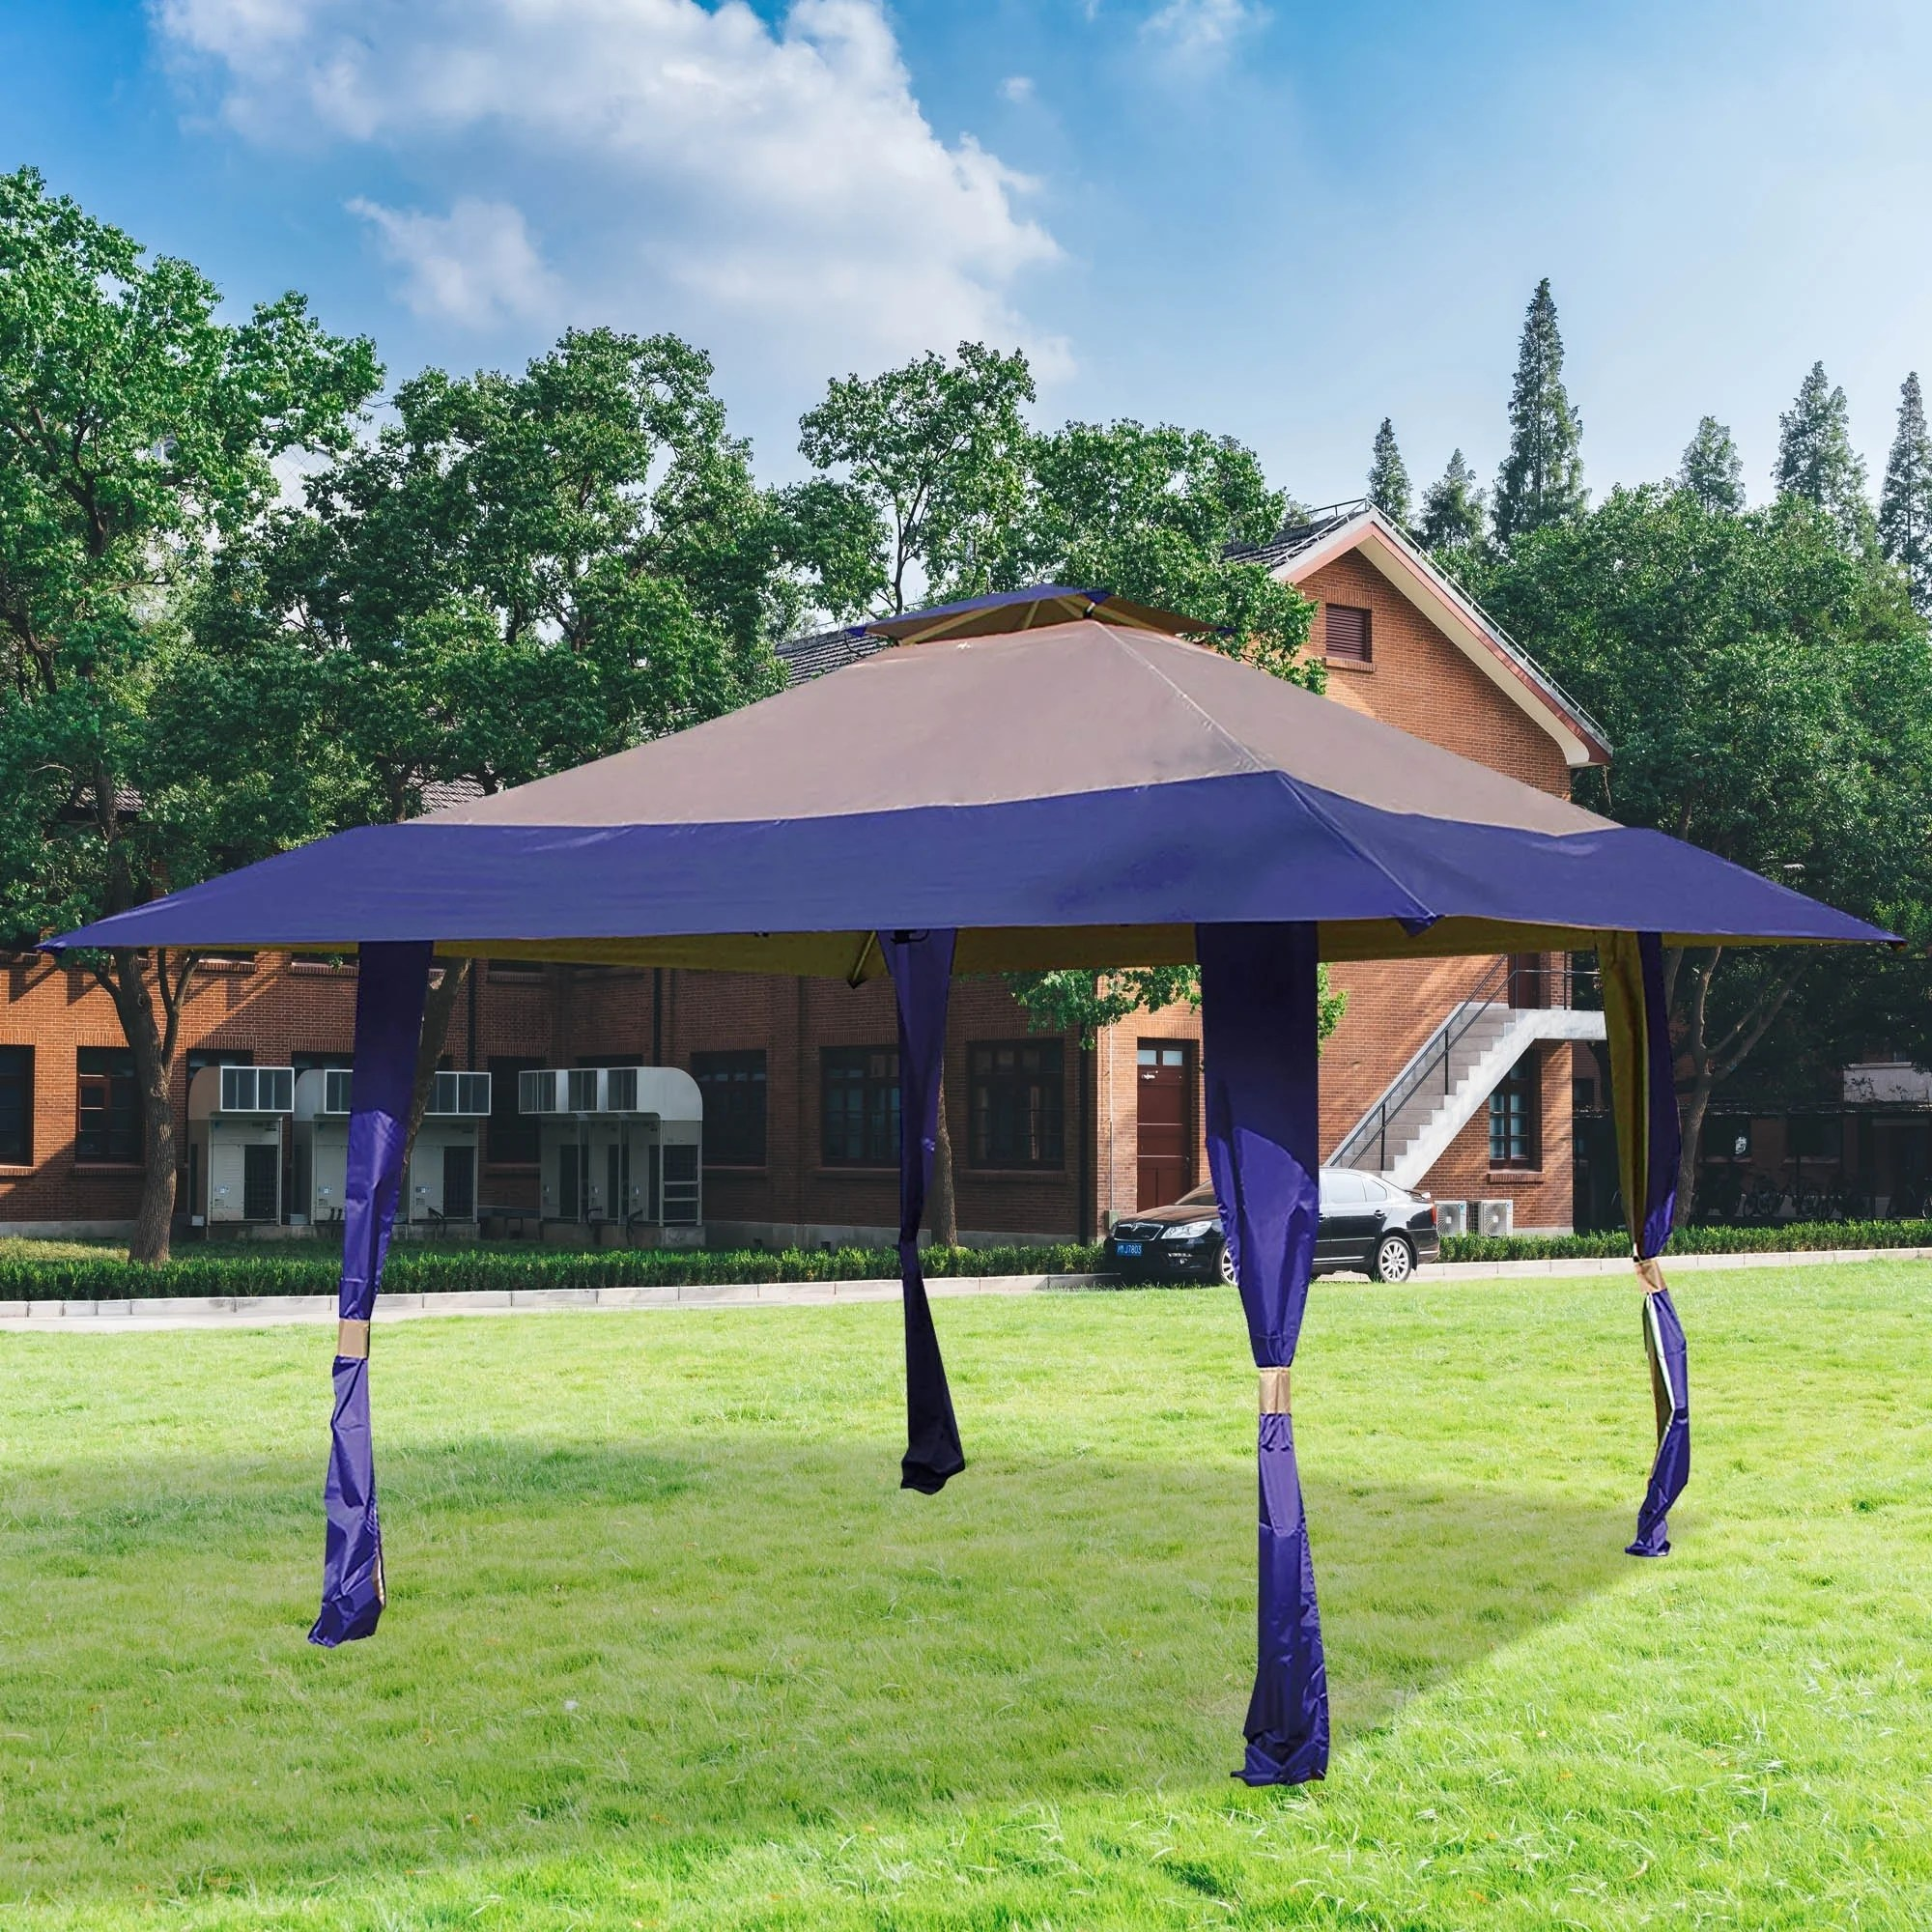 Pop Up Canopy 13 X 13 Pop Up Canopy Outdoor Yard Patio Double Roof Easy Set Up Canopy Tent For Party Event Royal Blue Tan